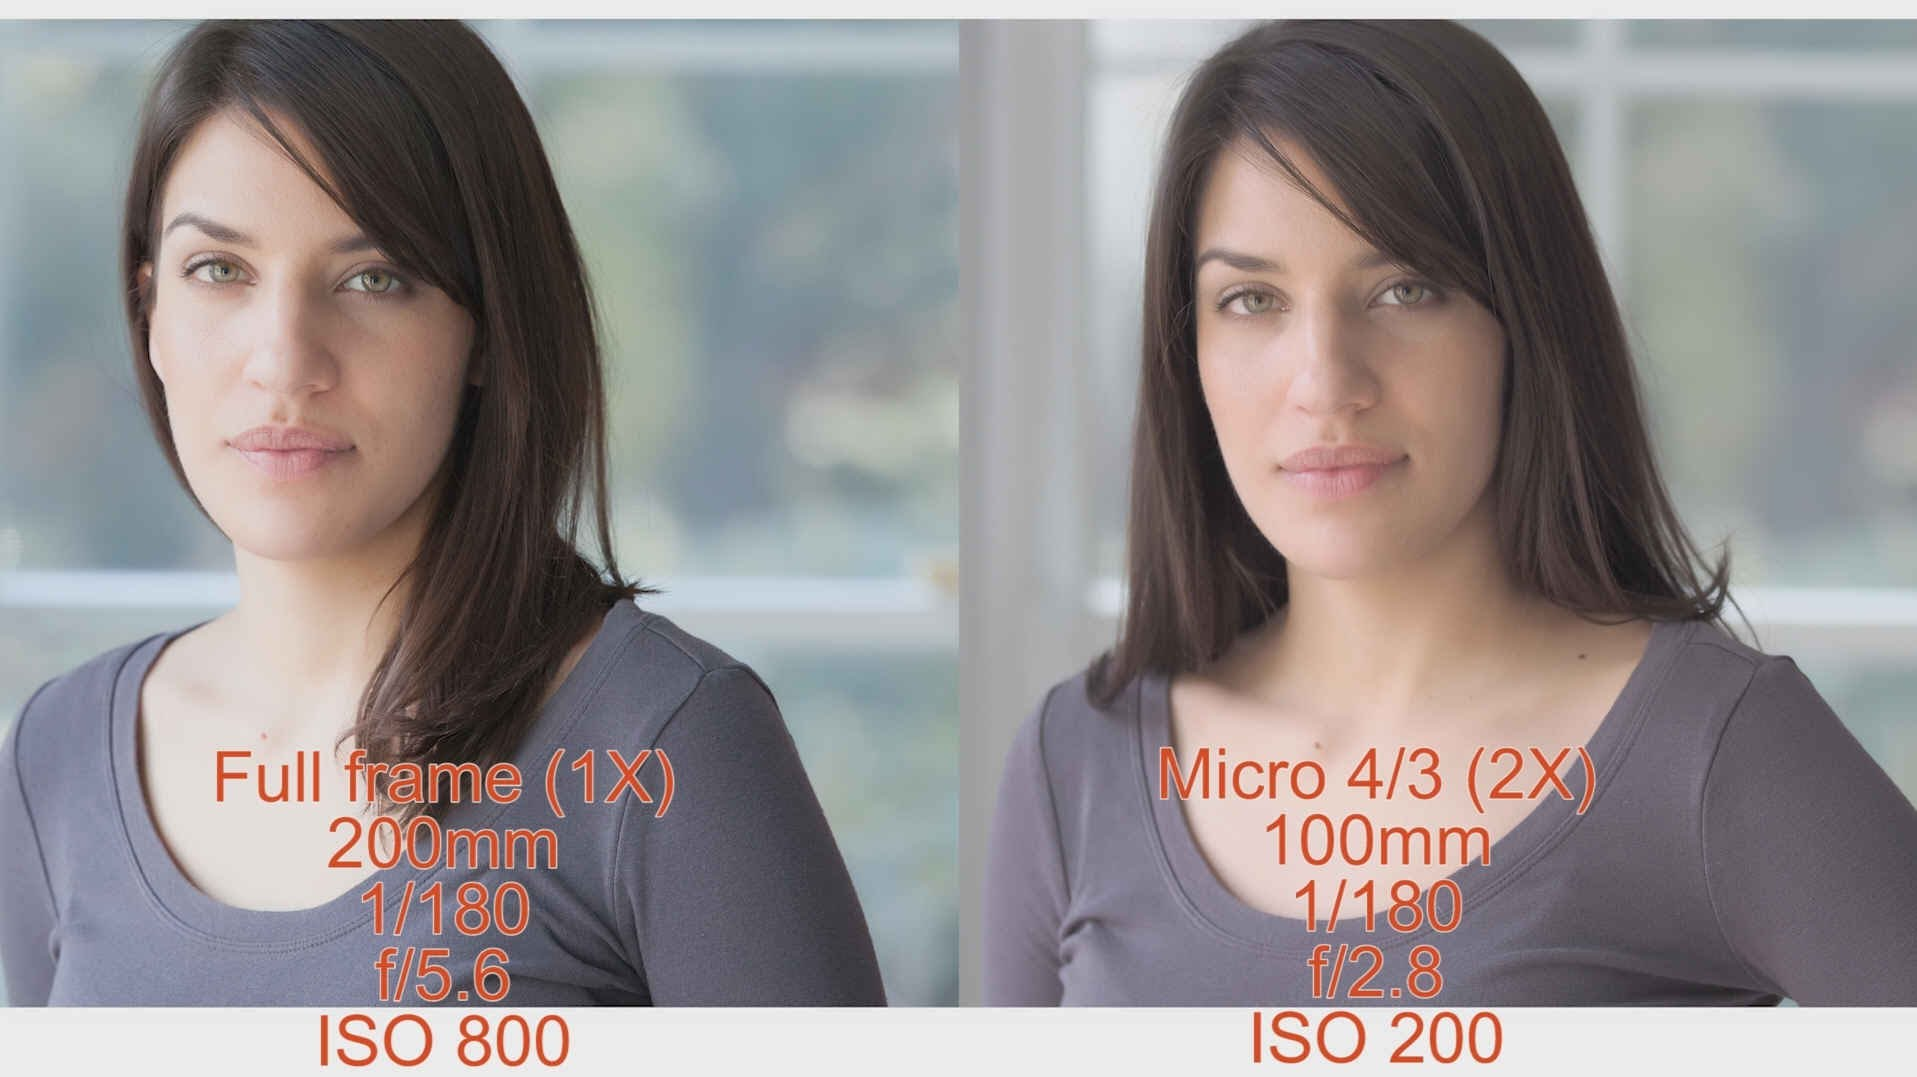 Understanding Crop Factor in Digital Cameras